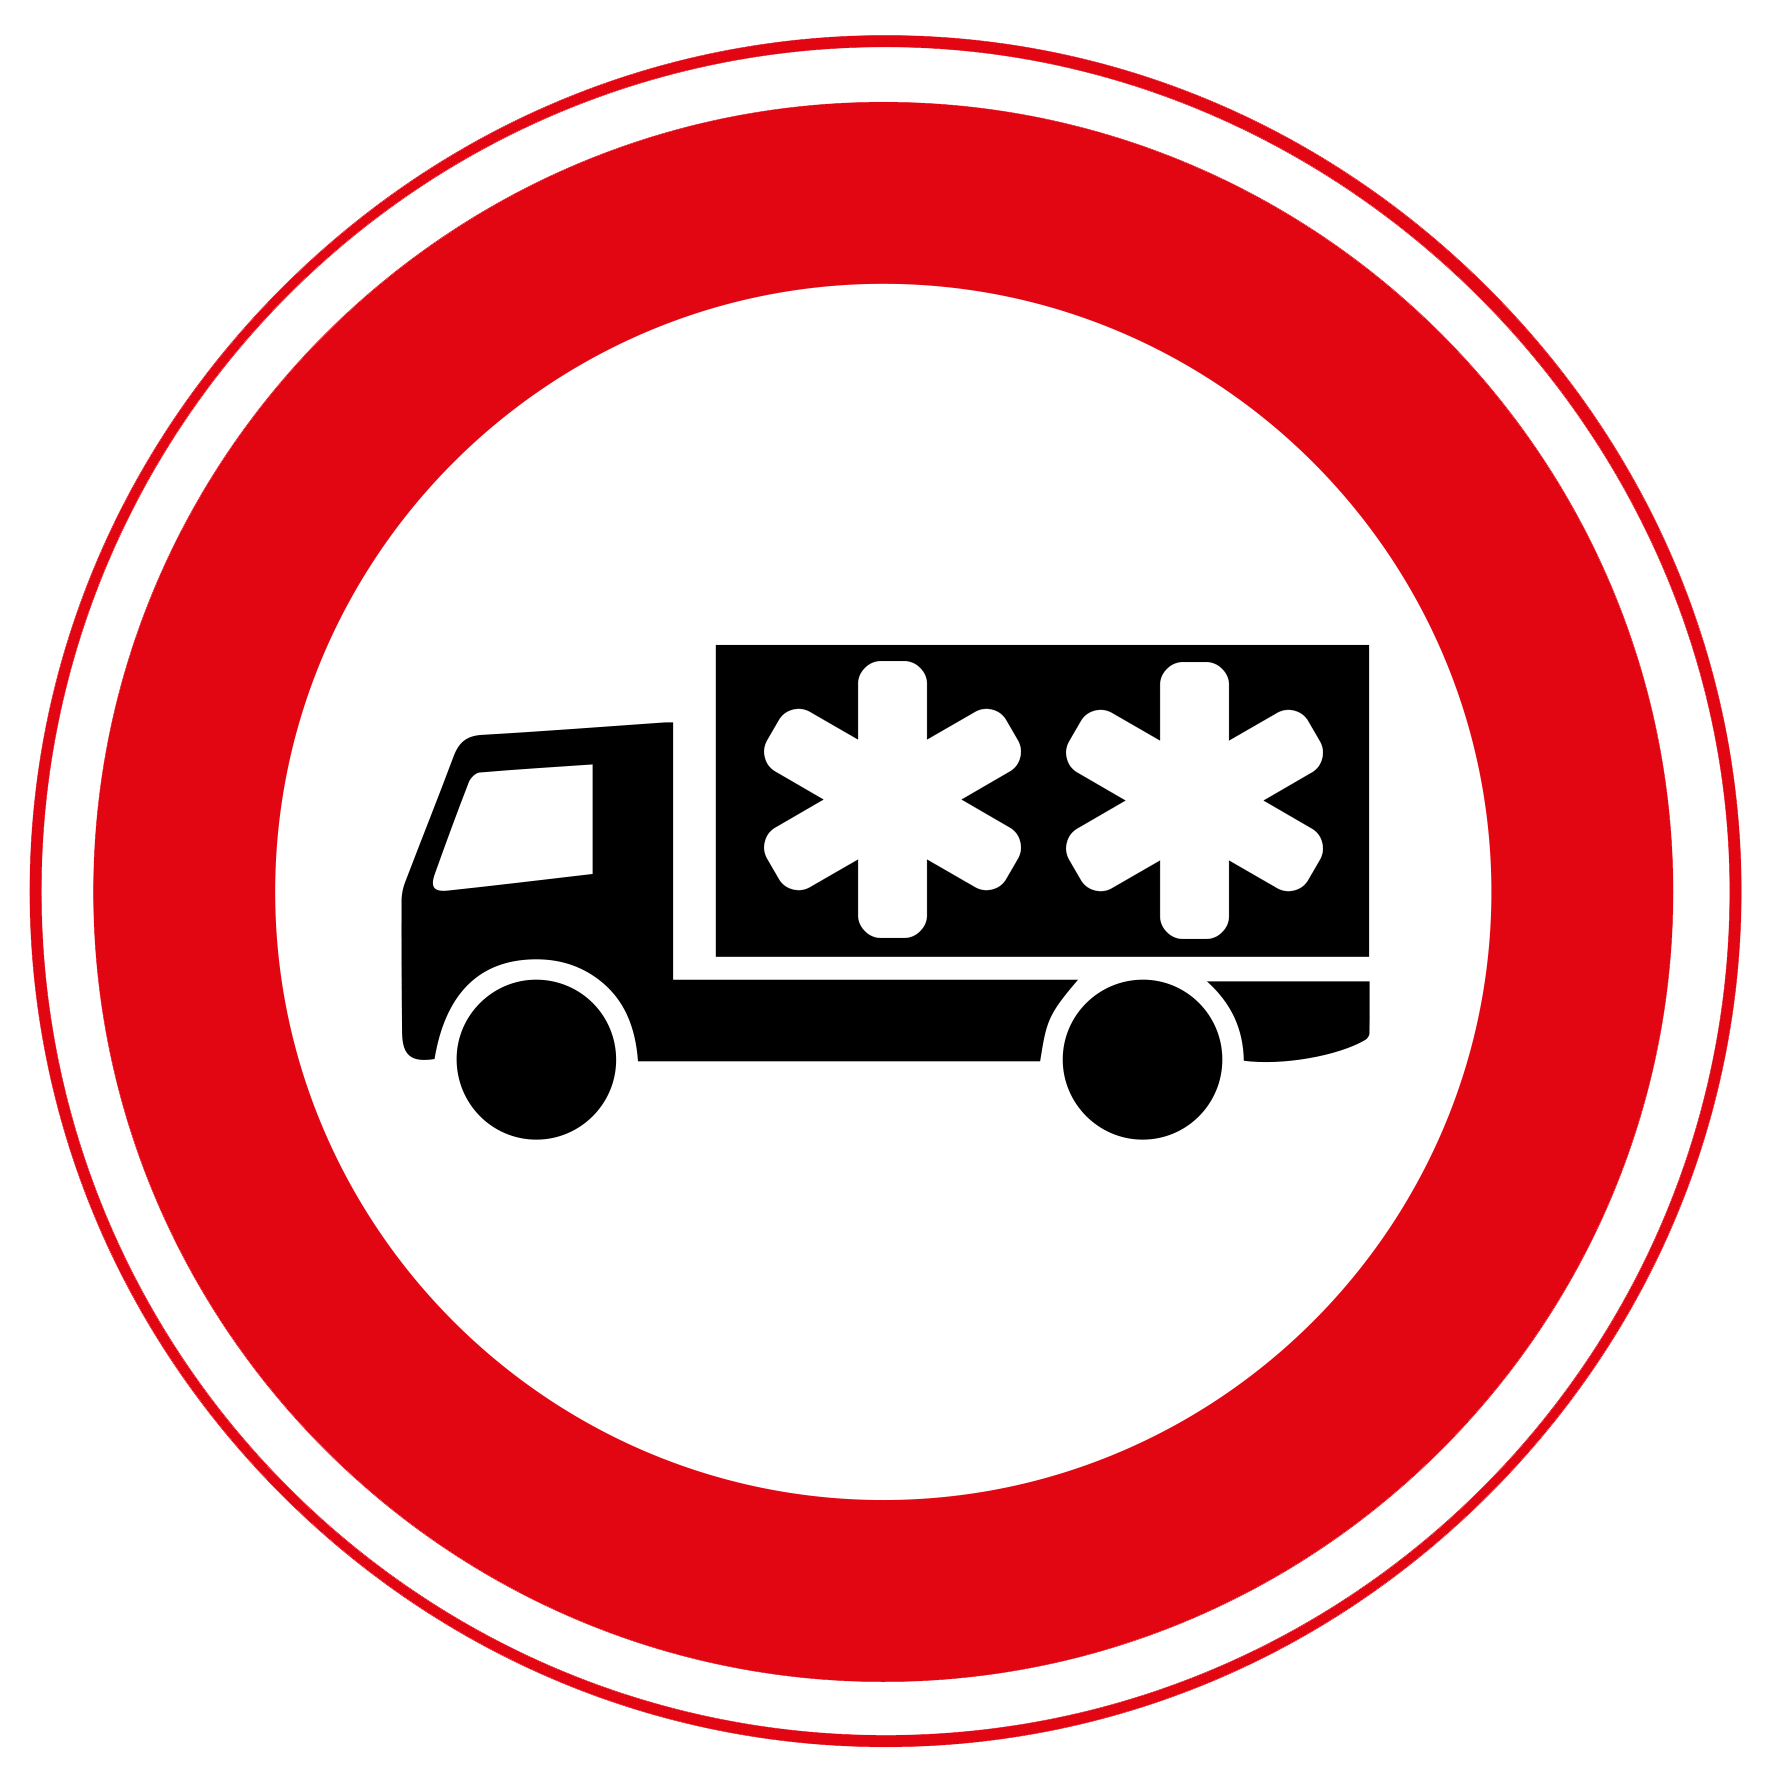 Hazardous Material for Transport